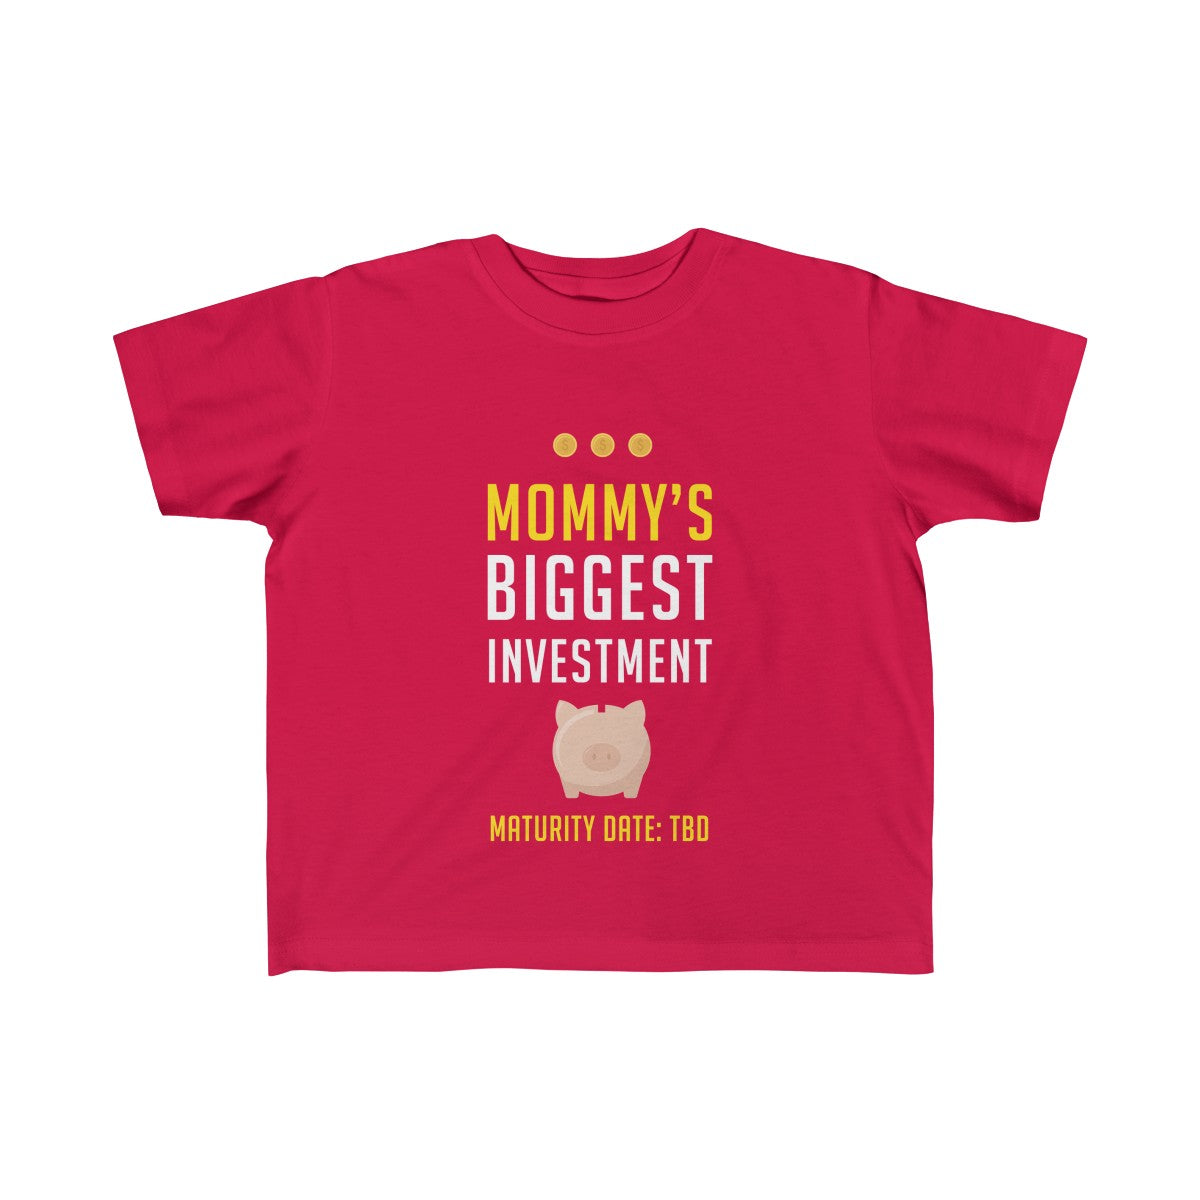 Mommy's Biggest Investment: Maturity Date TBD™ Toddler Tee